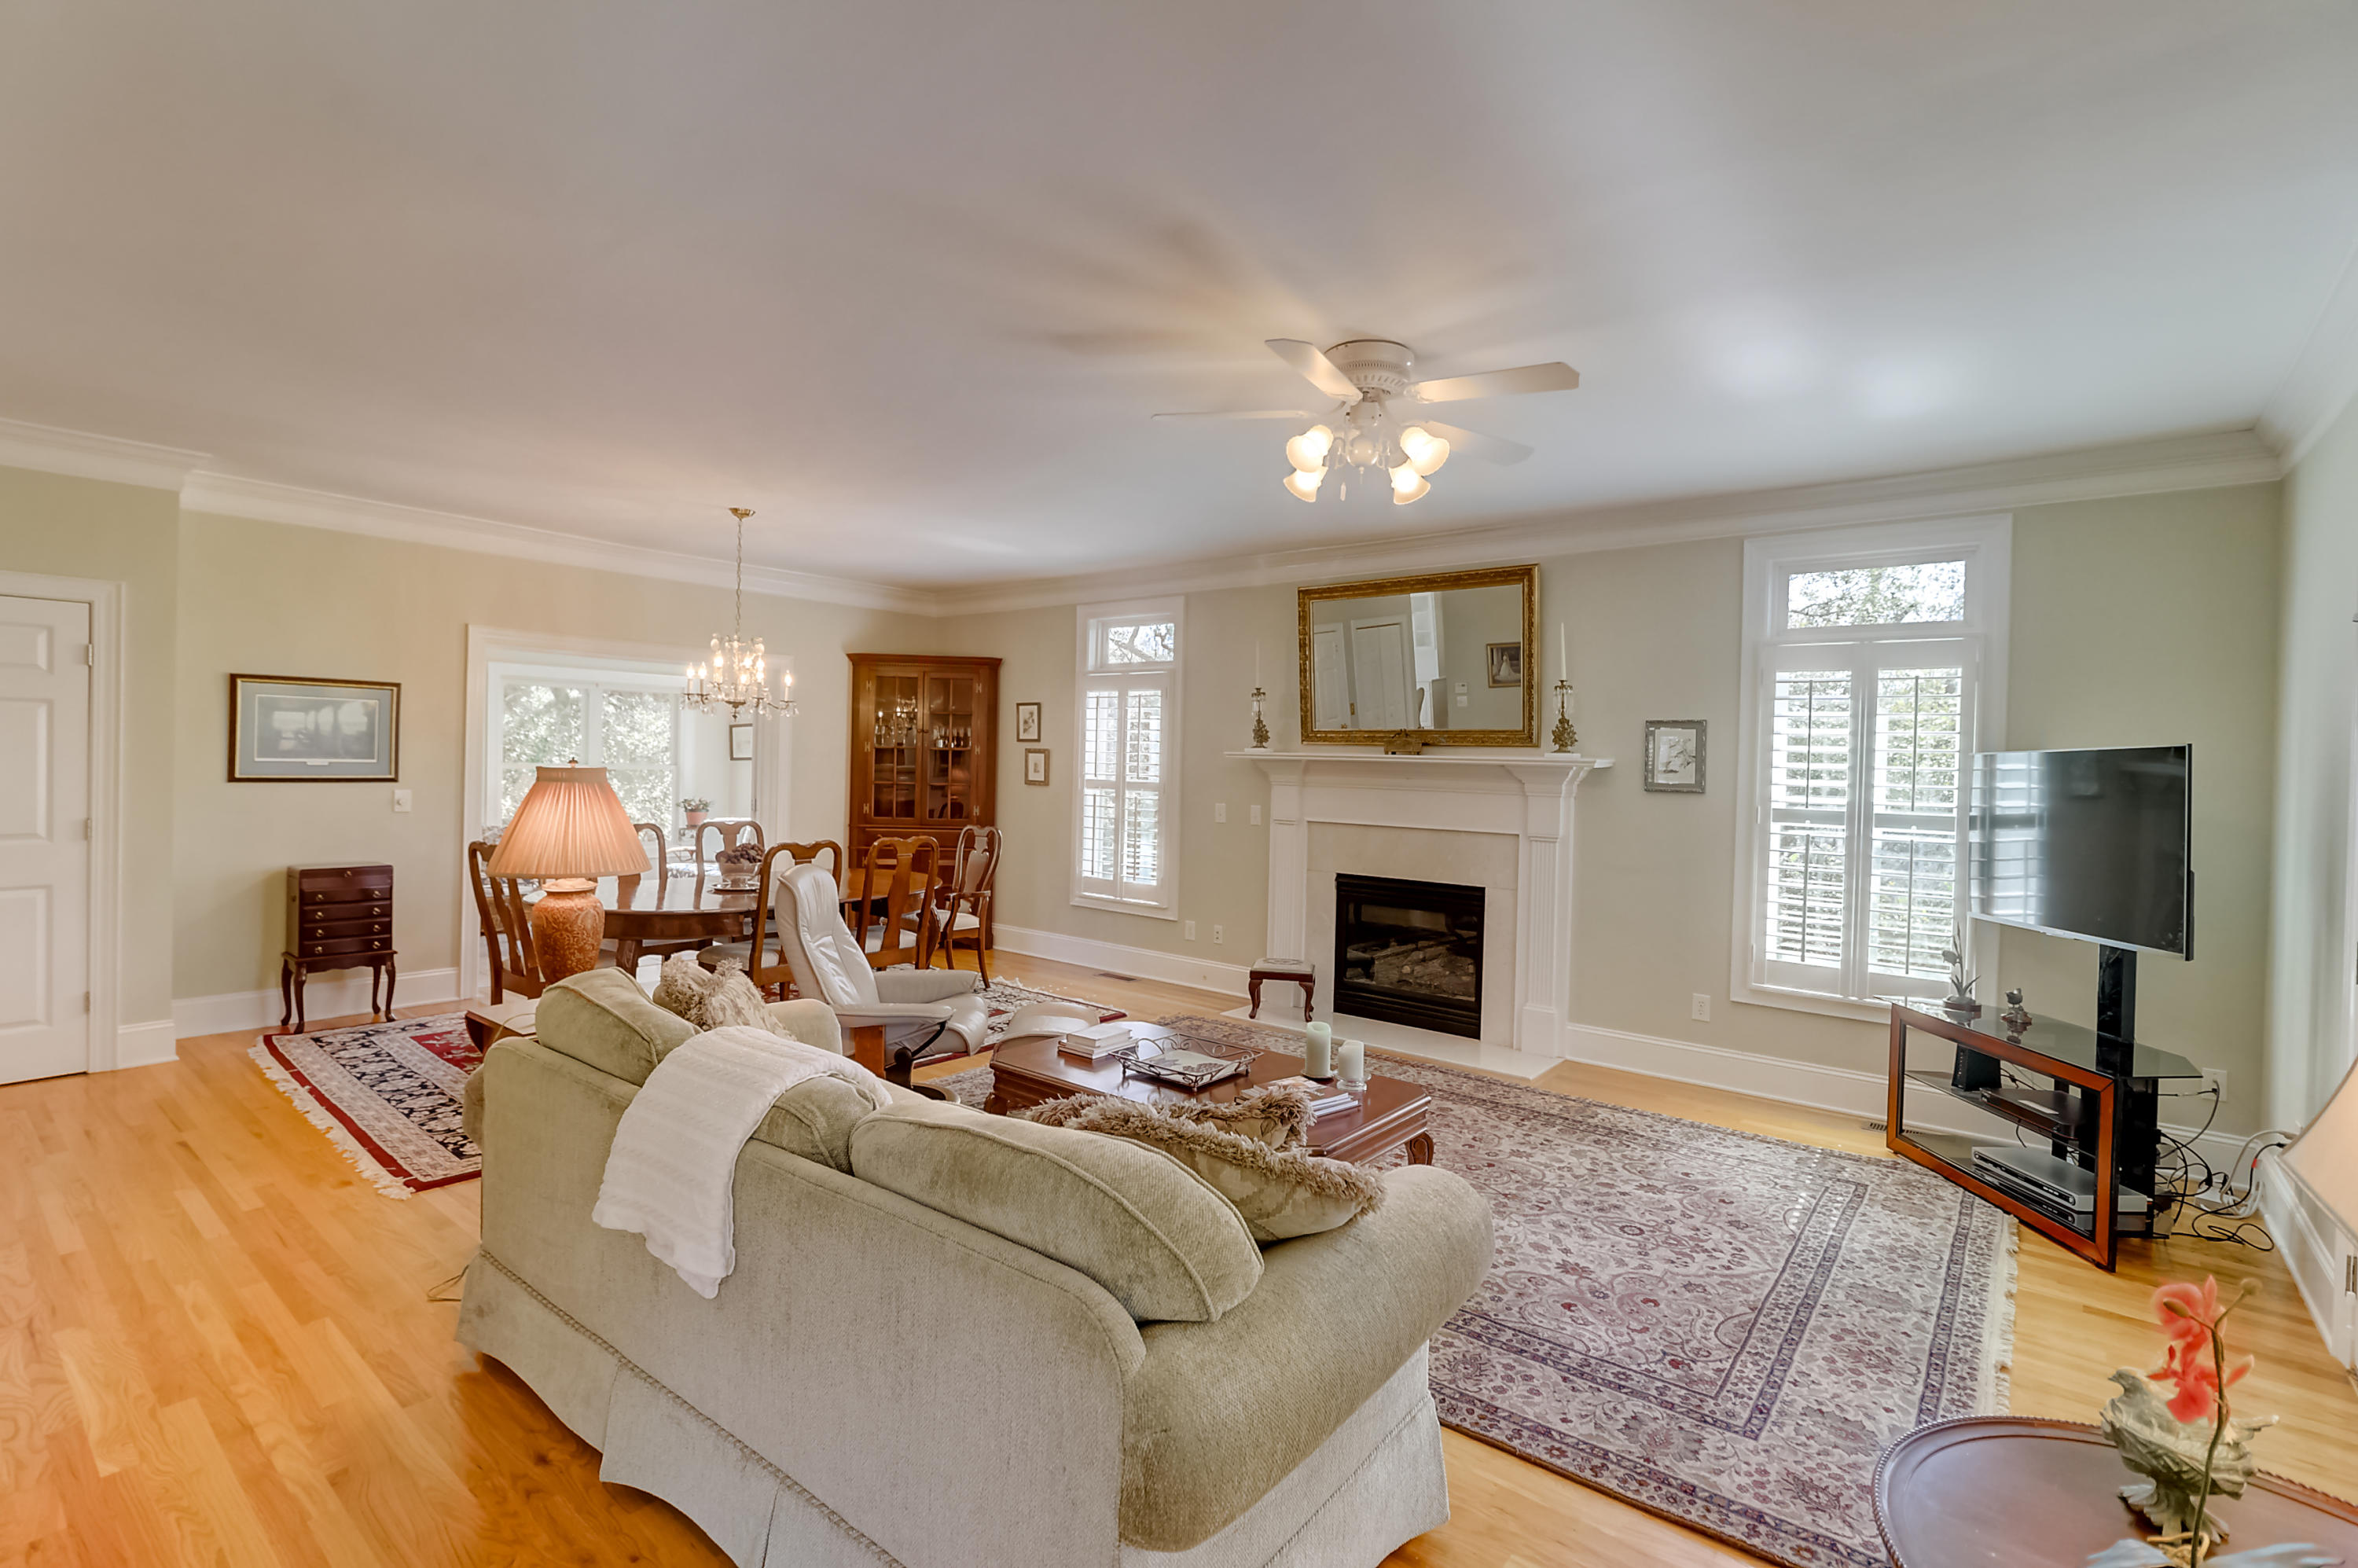 Stratton Place Homes For Sale - 1494 Stratton, Mount Pleasant, SC - 70